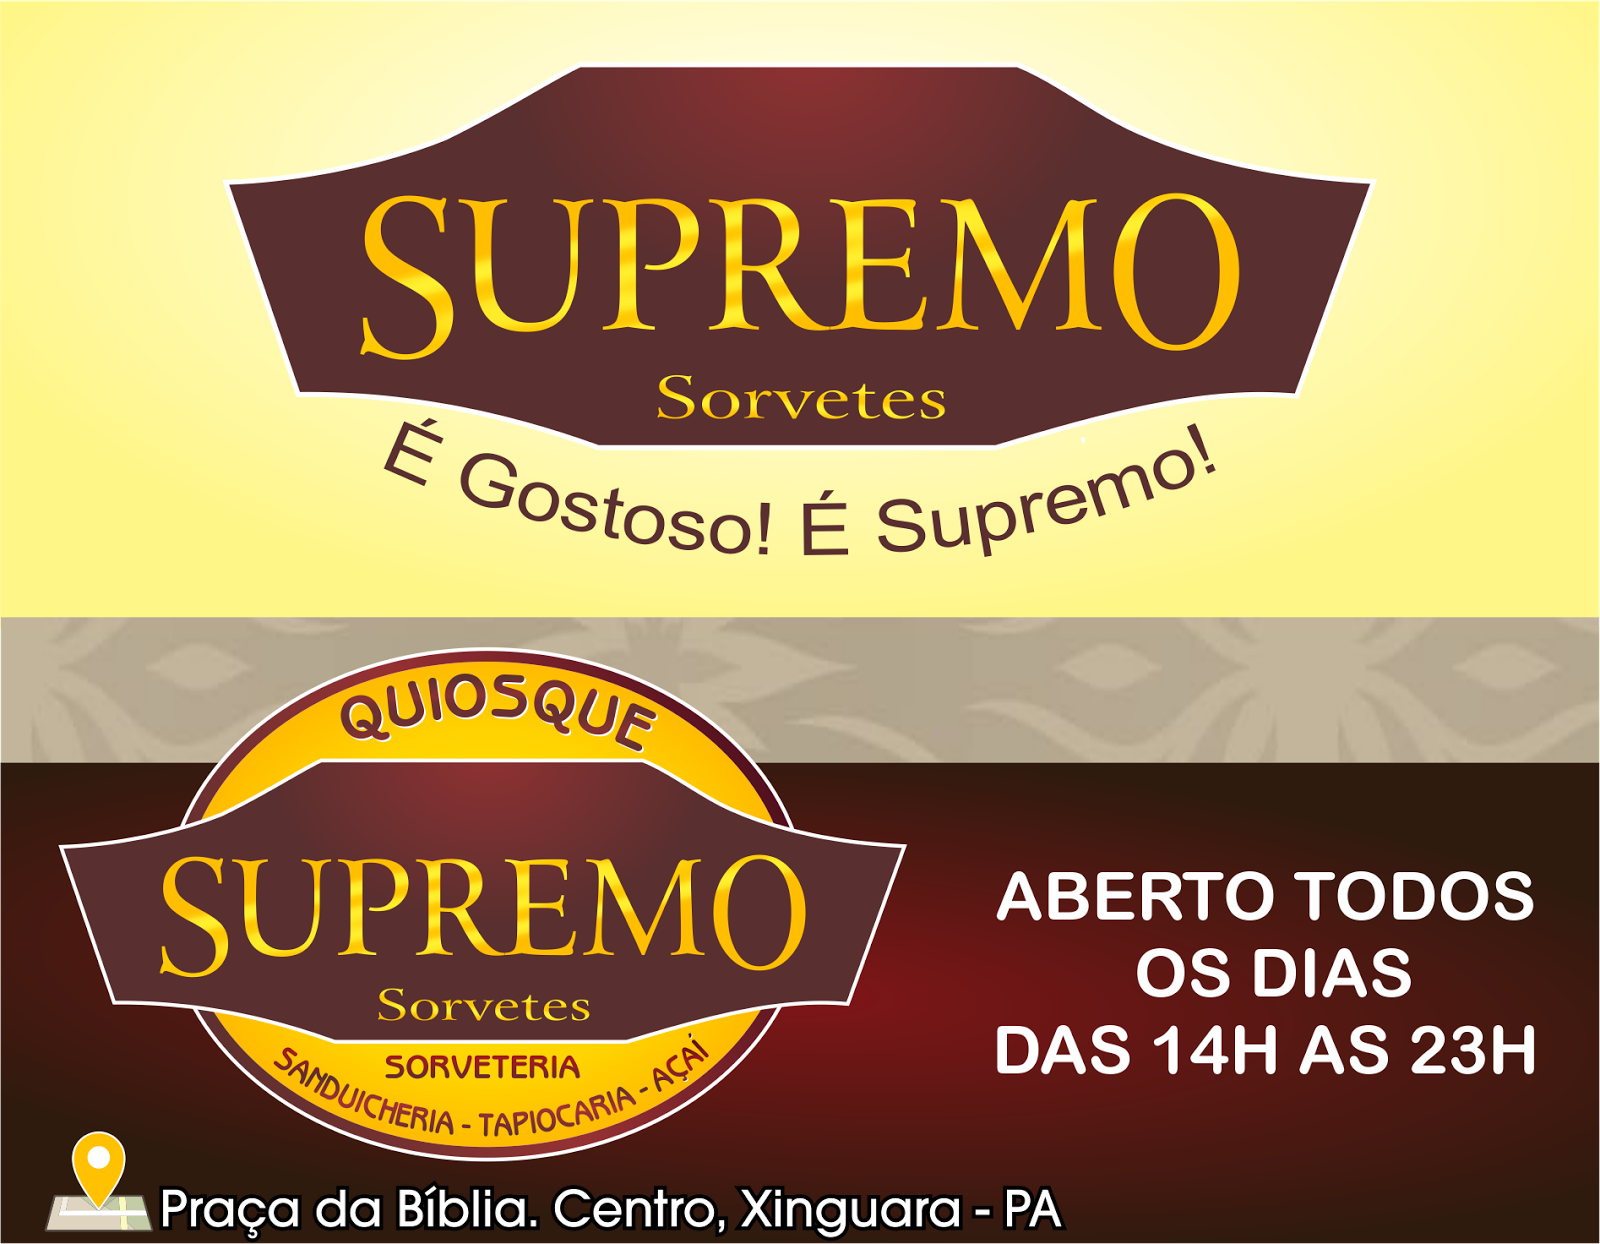 SUPREMO SORVETES